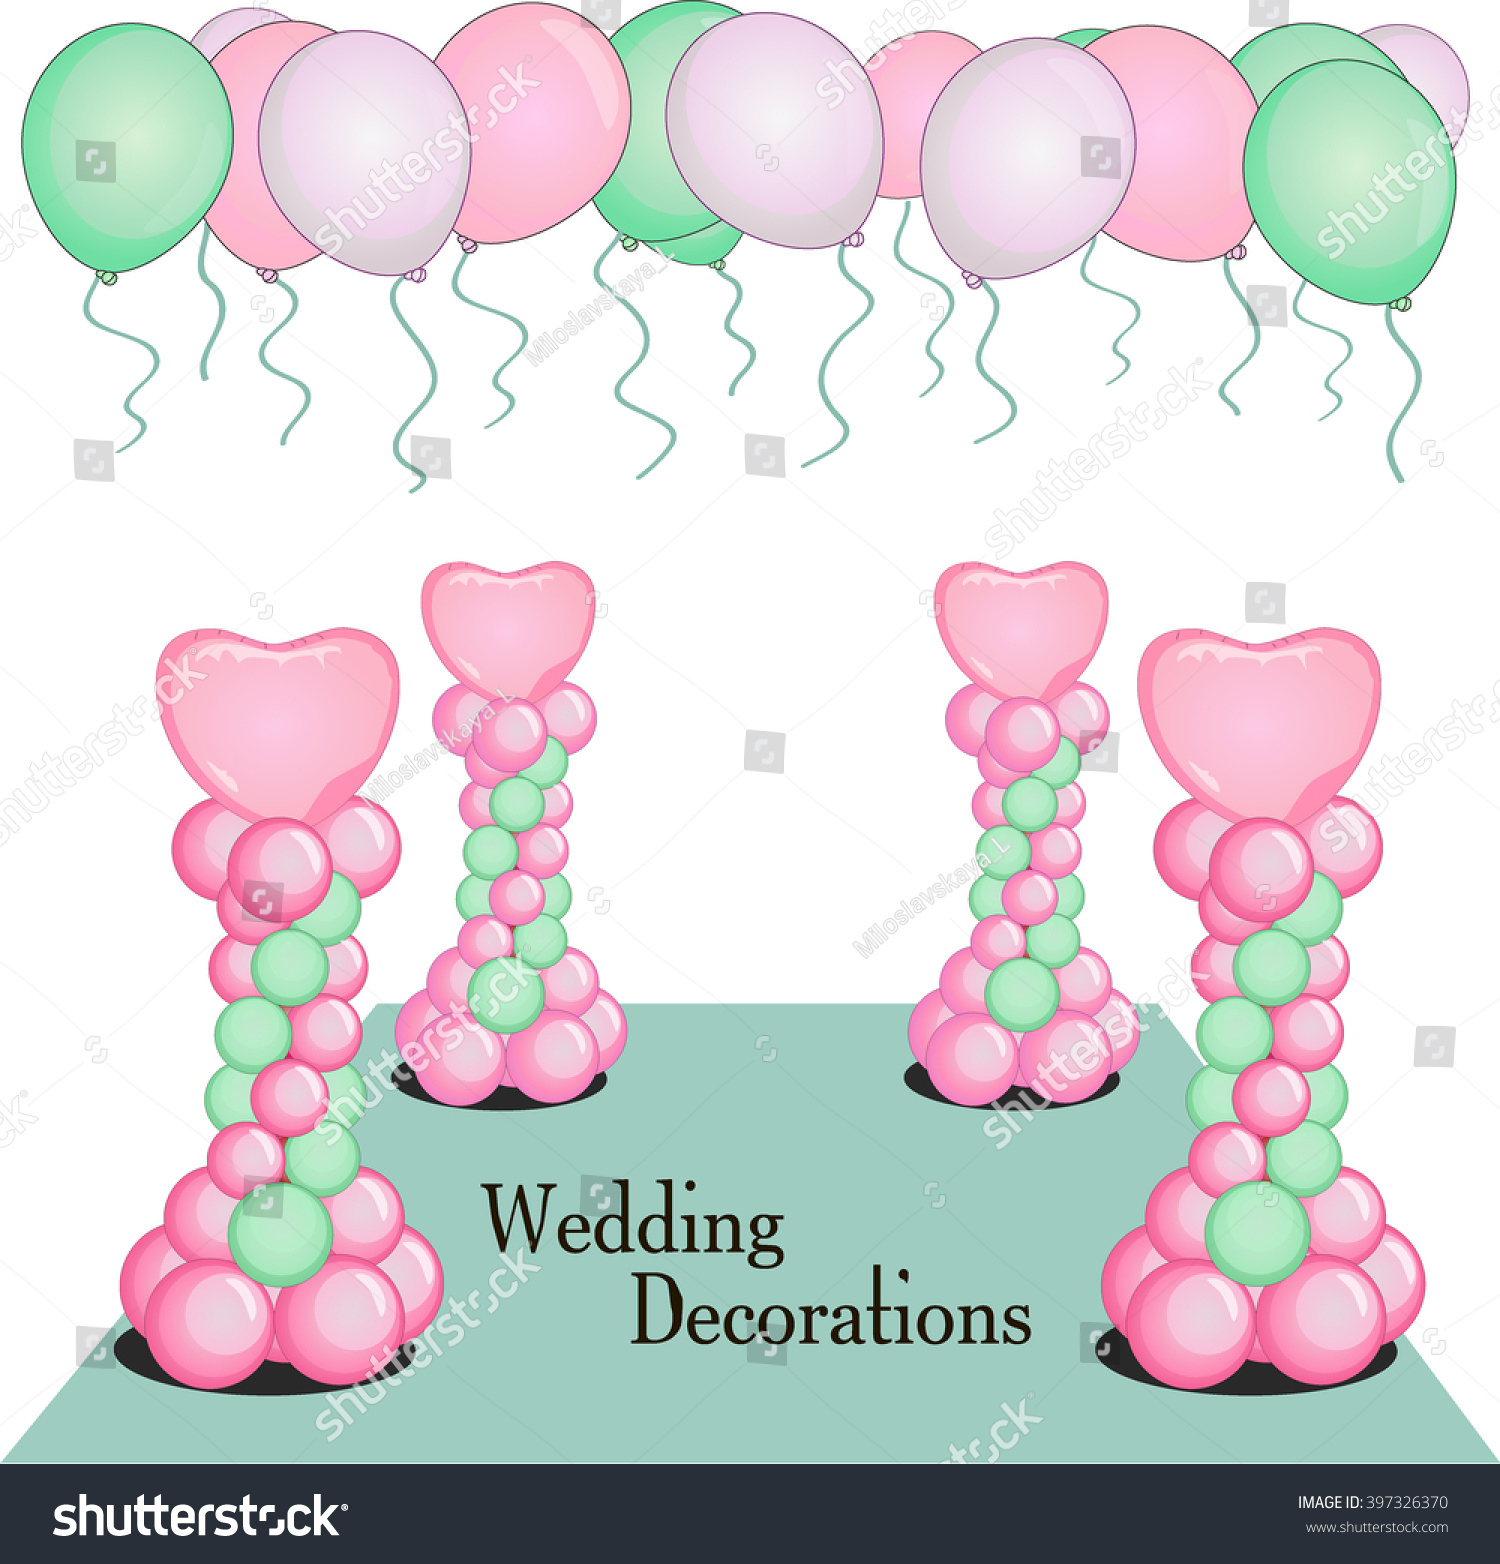 Event Decoration Balloon Wedding Party Birthday Stock Vector (2018 ...